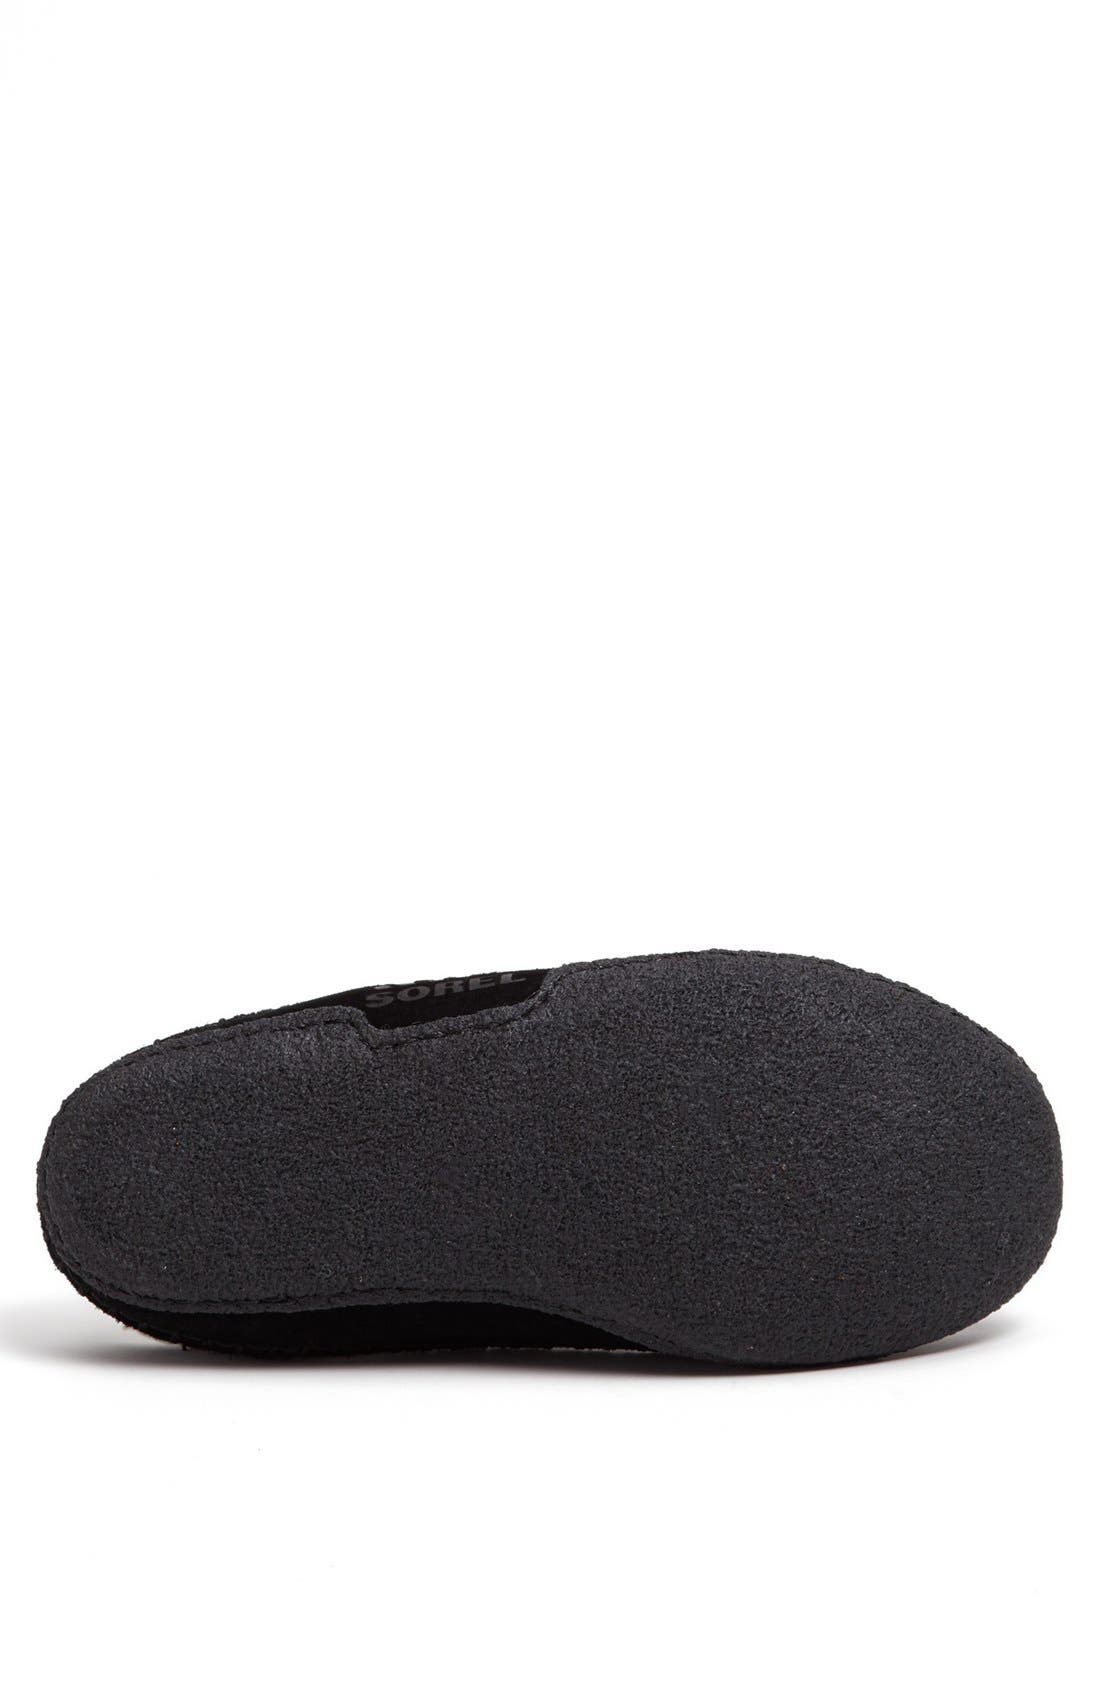 'Falcon Ridge' Slipper,                             Alternate thumbnail 4, color,                             010